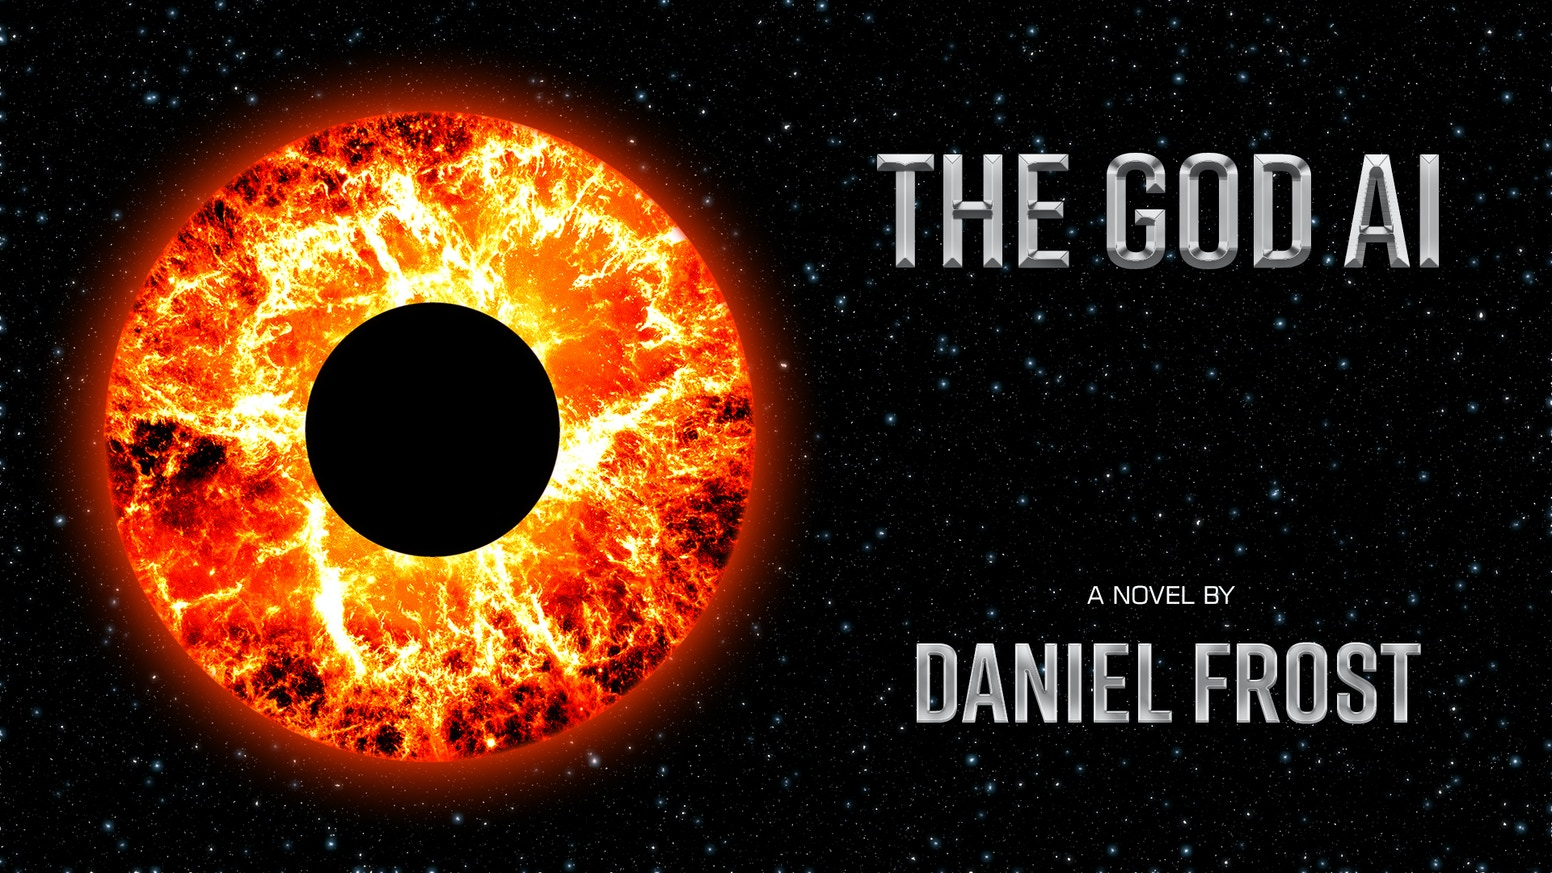 This sci-fi thriller novel portrays a future controlled by a super AI named Adam. Prepare to be blown away by its shocking ending!